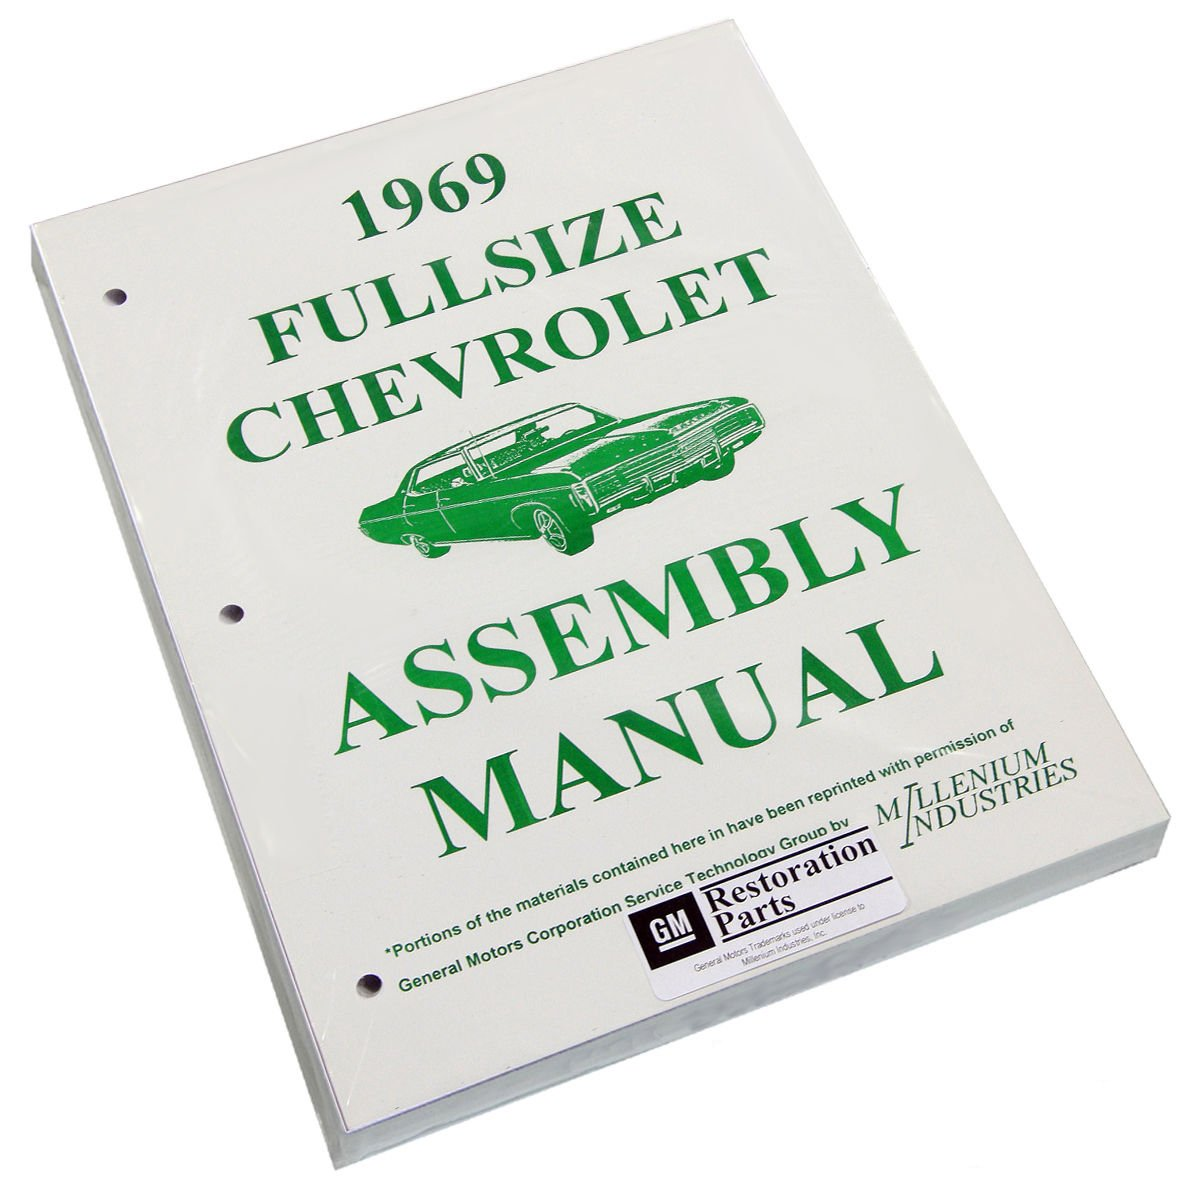 Inline Tube (I-2-13) Factory Assembly Manual for 1969 Full Sized Chevrolet Cars Bel Air, Impala, Wagons etc.